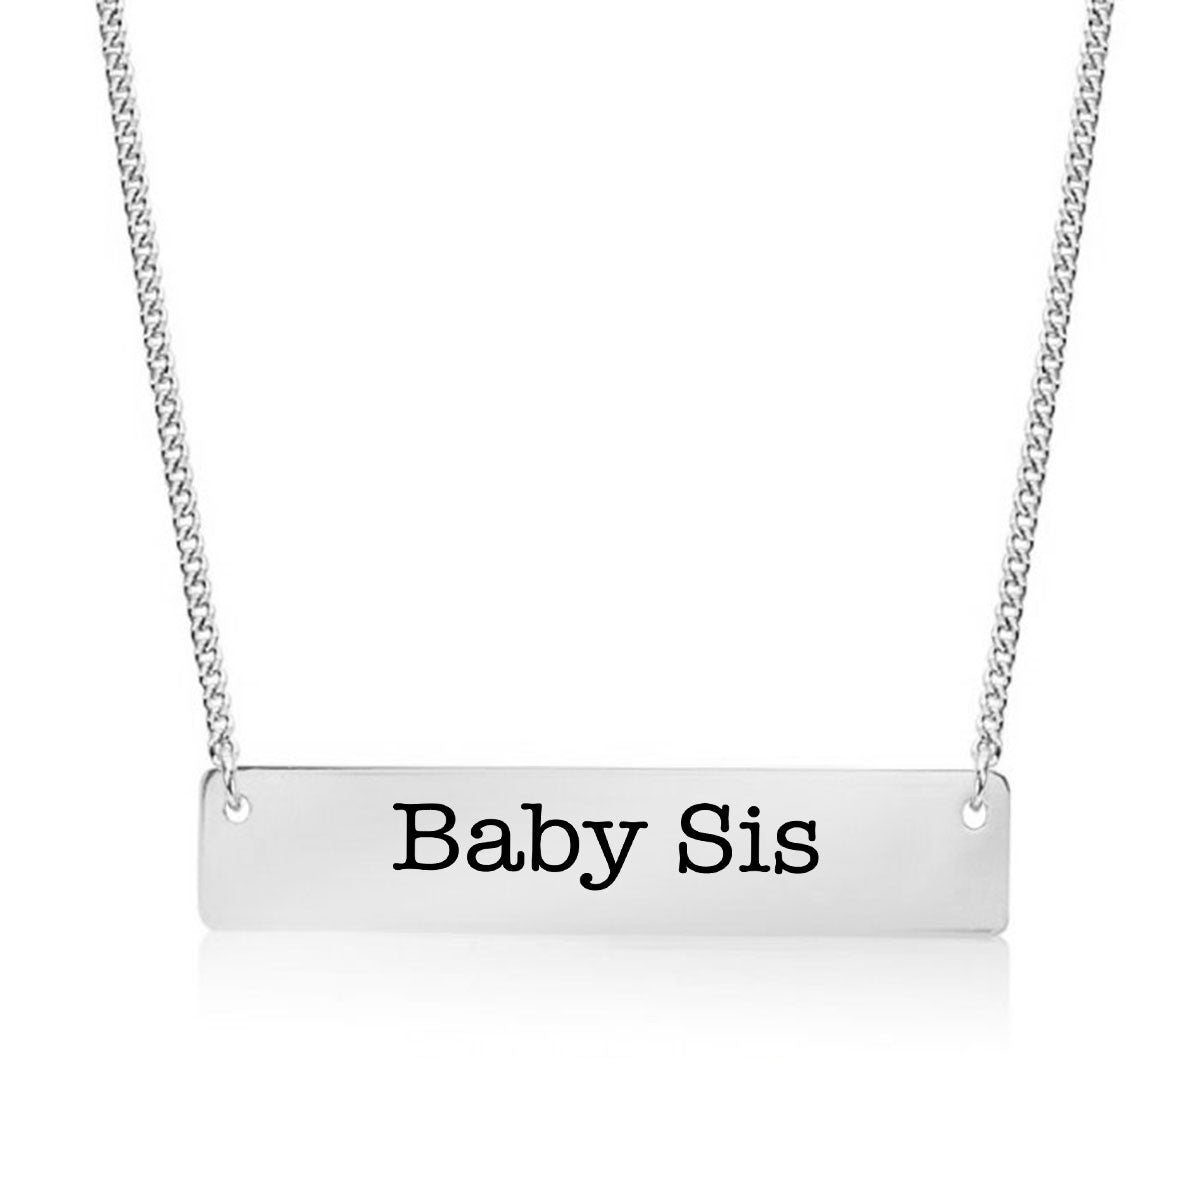 Baby Sister Gold / Silver Bar Necklace - Sister Gifts - pipercleo.com